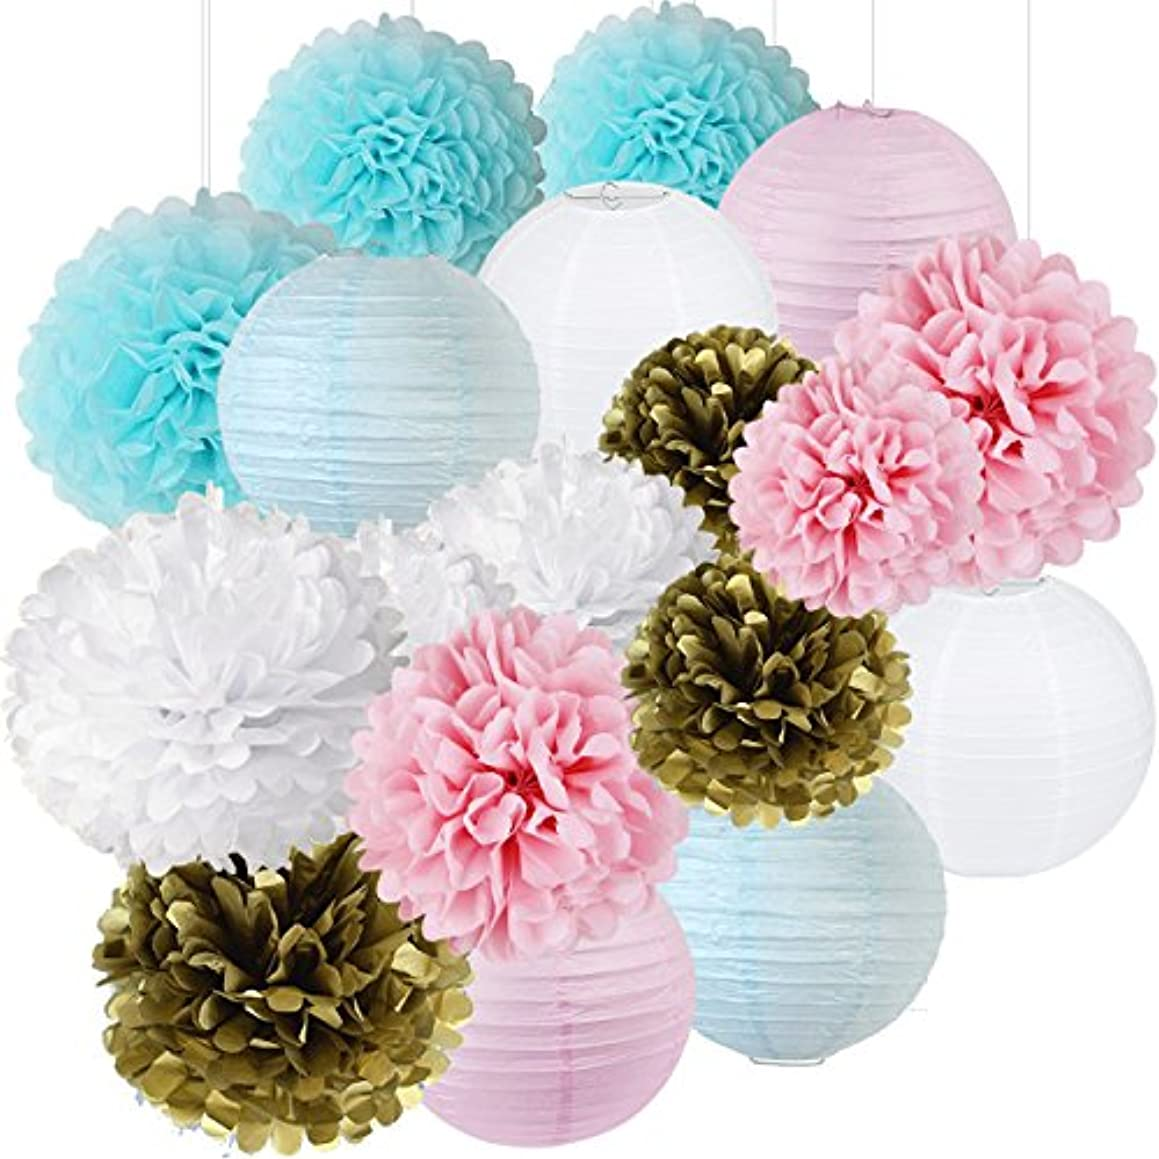 Gender Reveal Party Supplies Boy or Girl Baby Shower Decorations Baby Blue Pink White Gold Tissue Paper Pom Pom Paper Lanterns for Pink and Blue Decorations /Gender Reveal Party Decorations